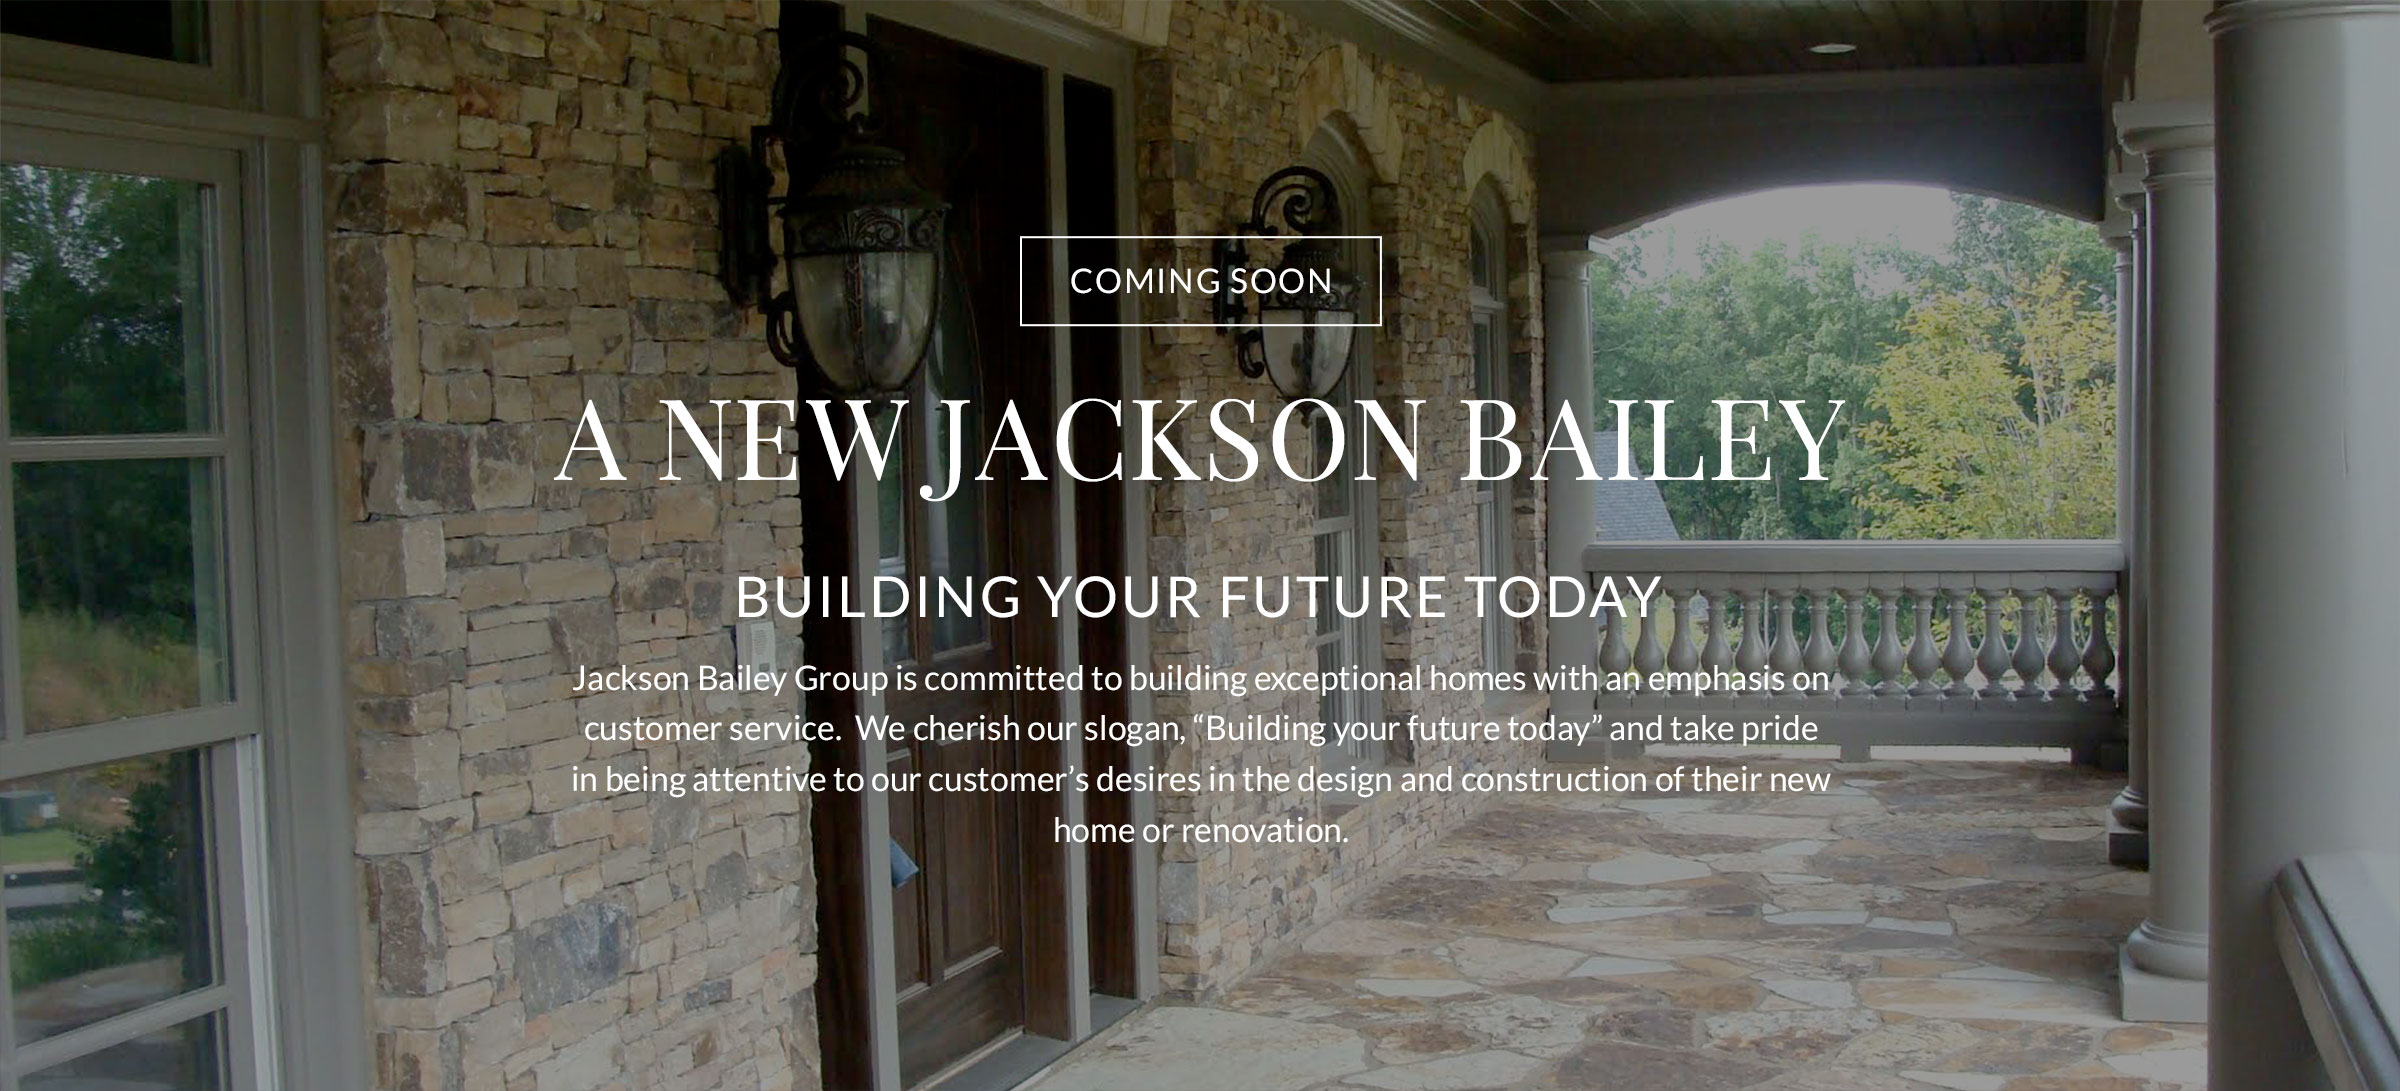 Jackson Bailey Group